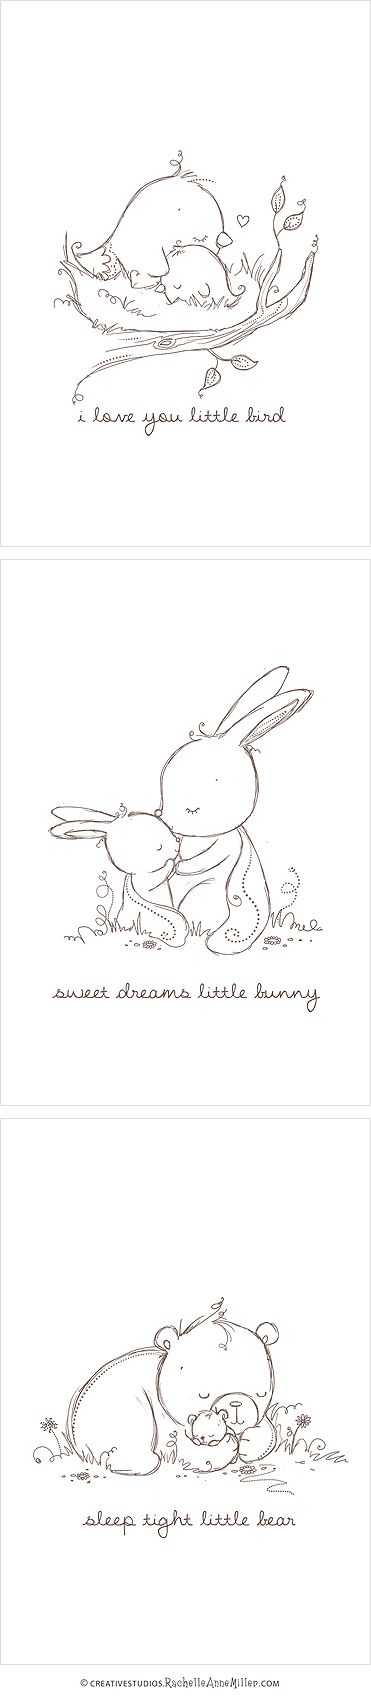 Baby Animal Sketches Great For Greeting Cards Or Other Creative Projects